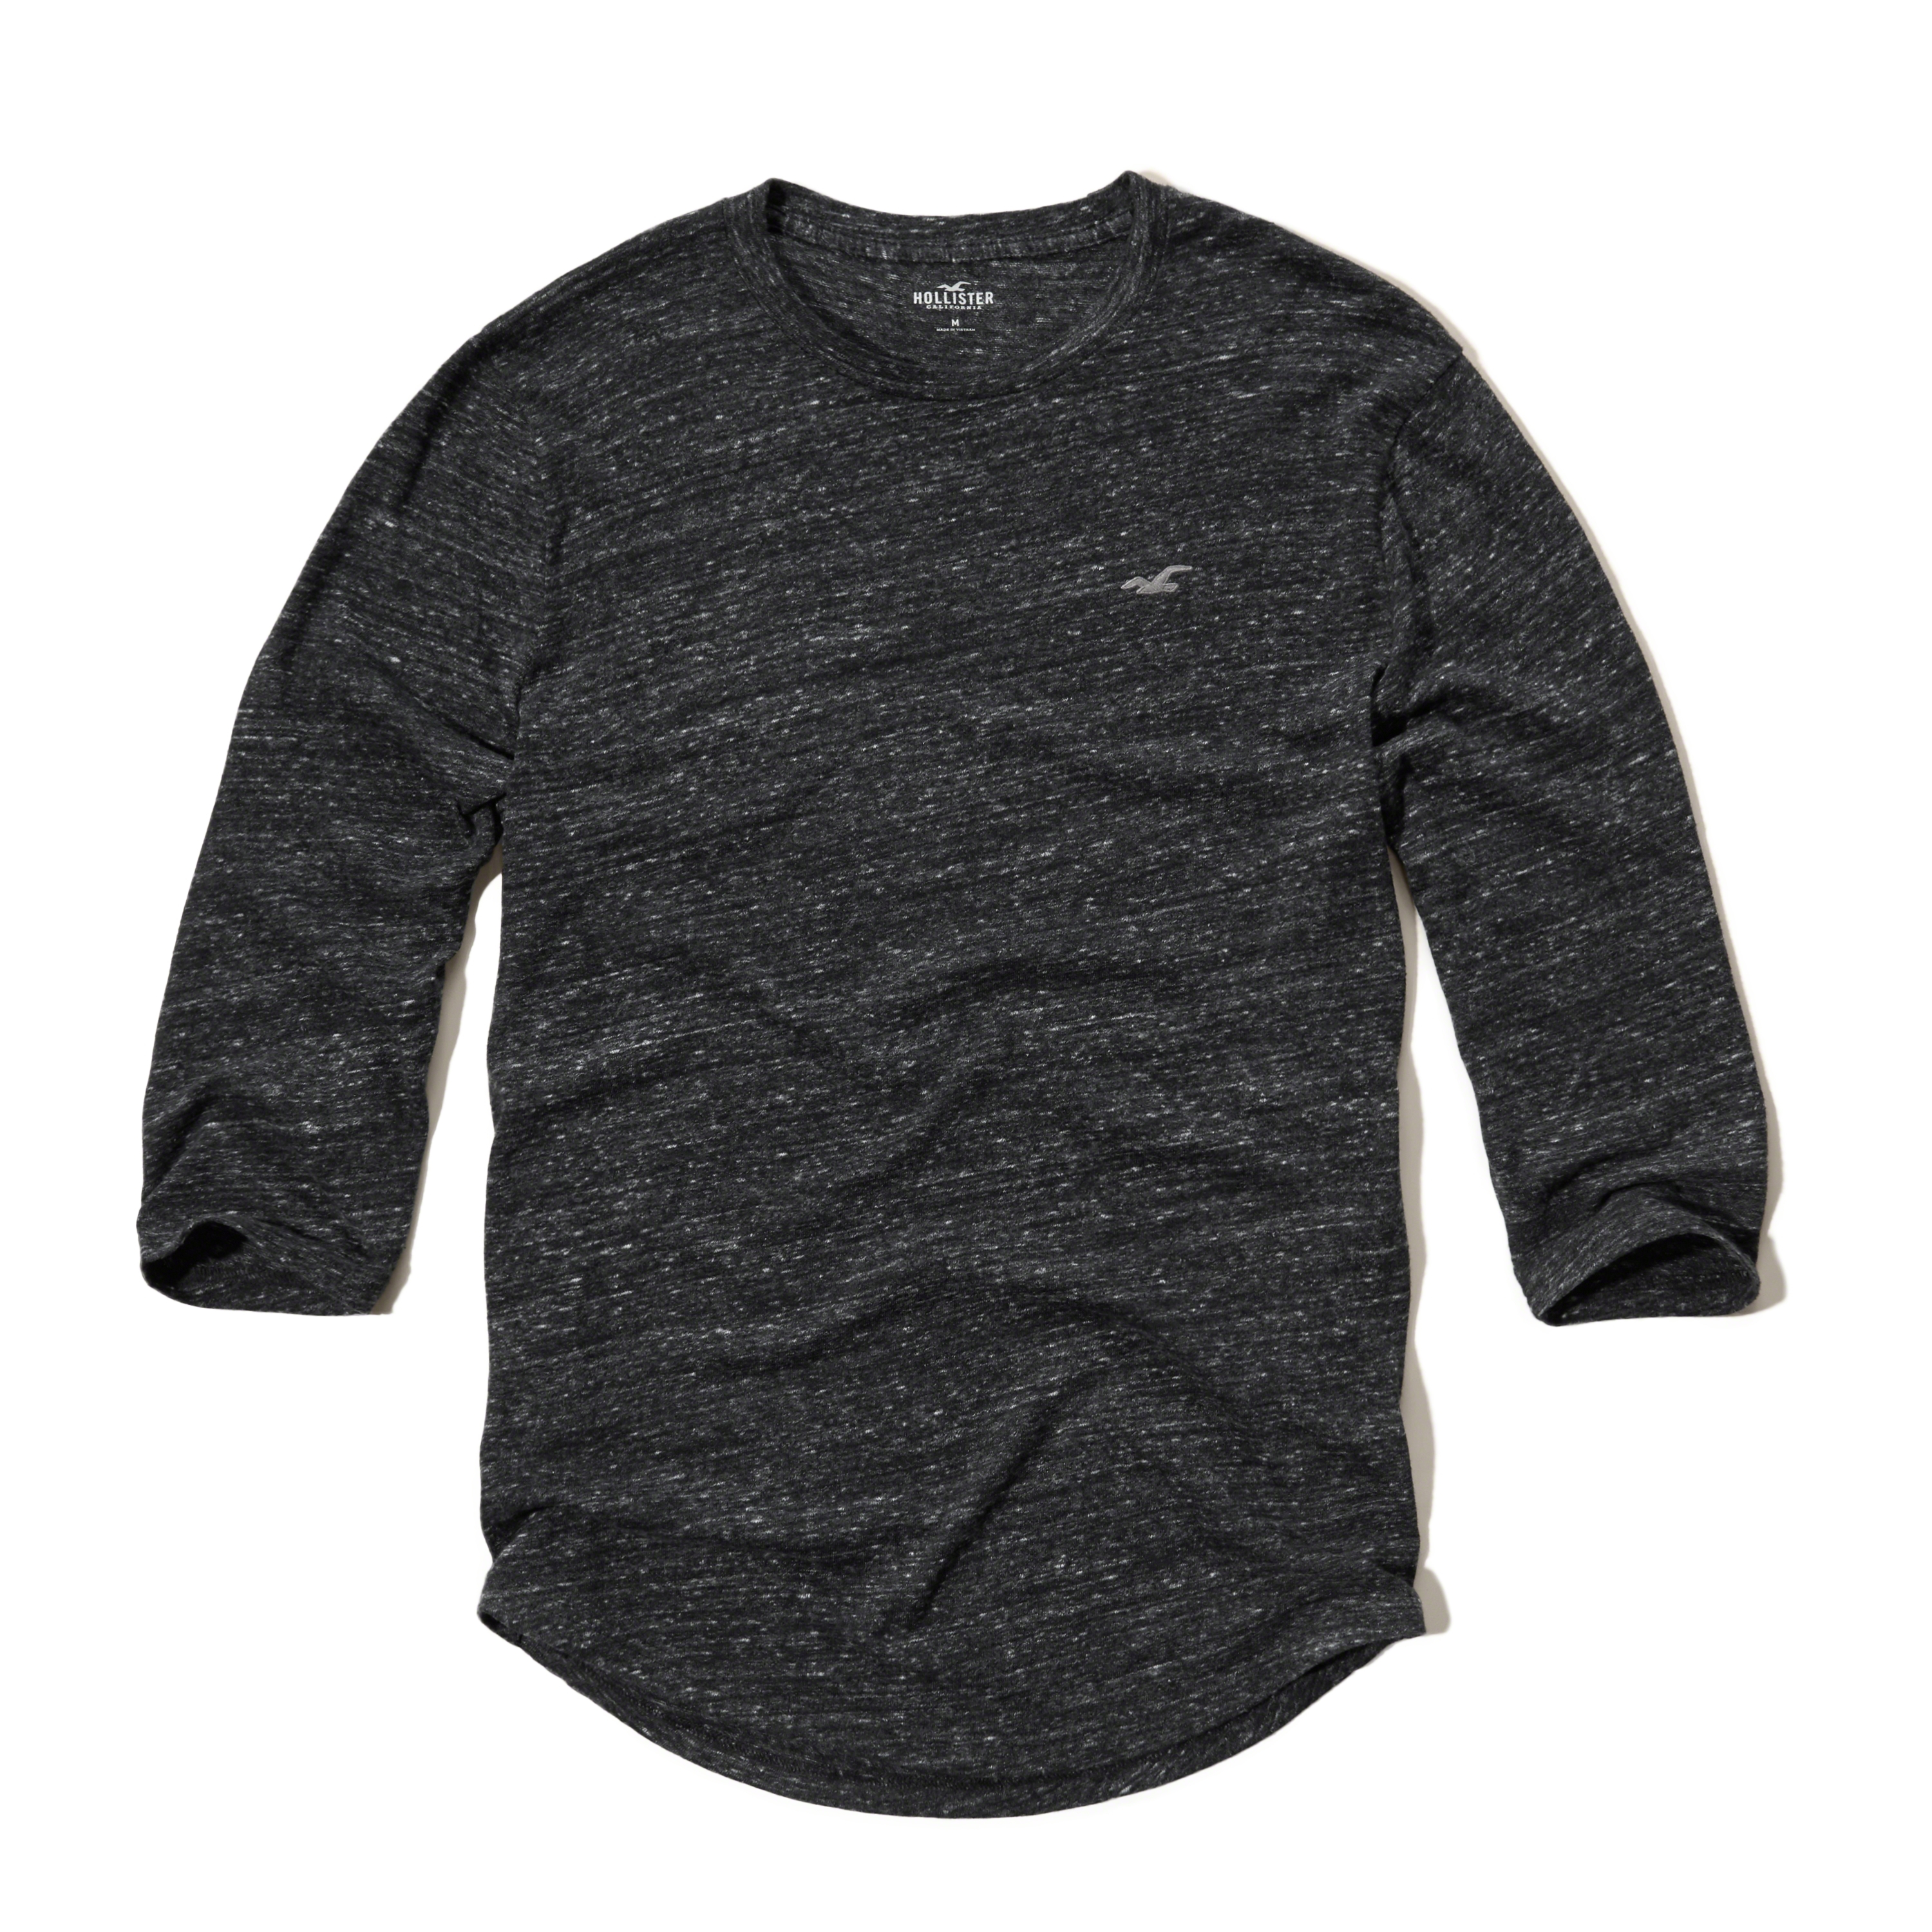 Lyst Hollister Three Quarter Sleeve Crew T Shirt In